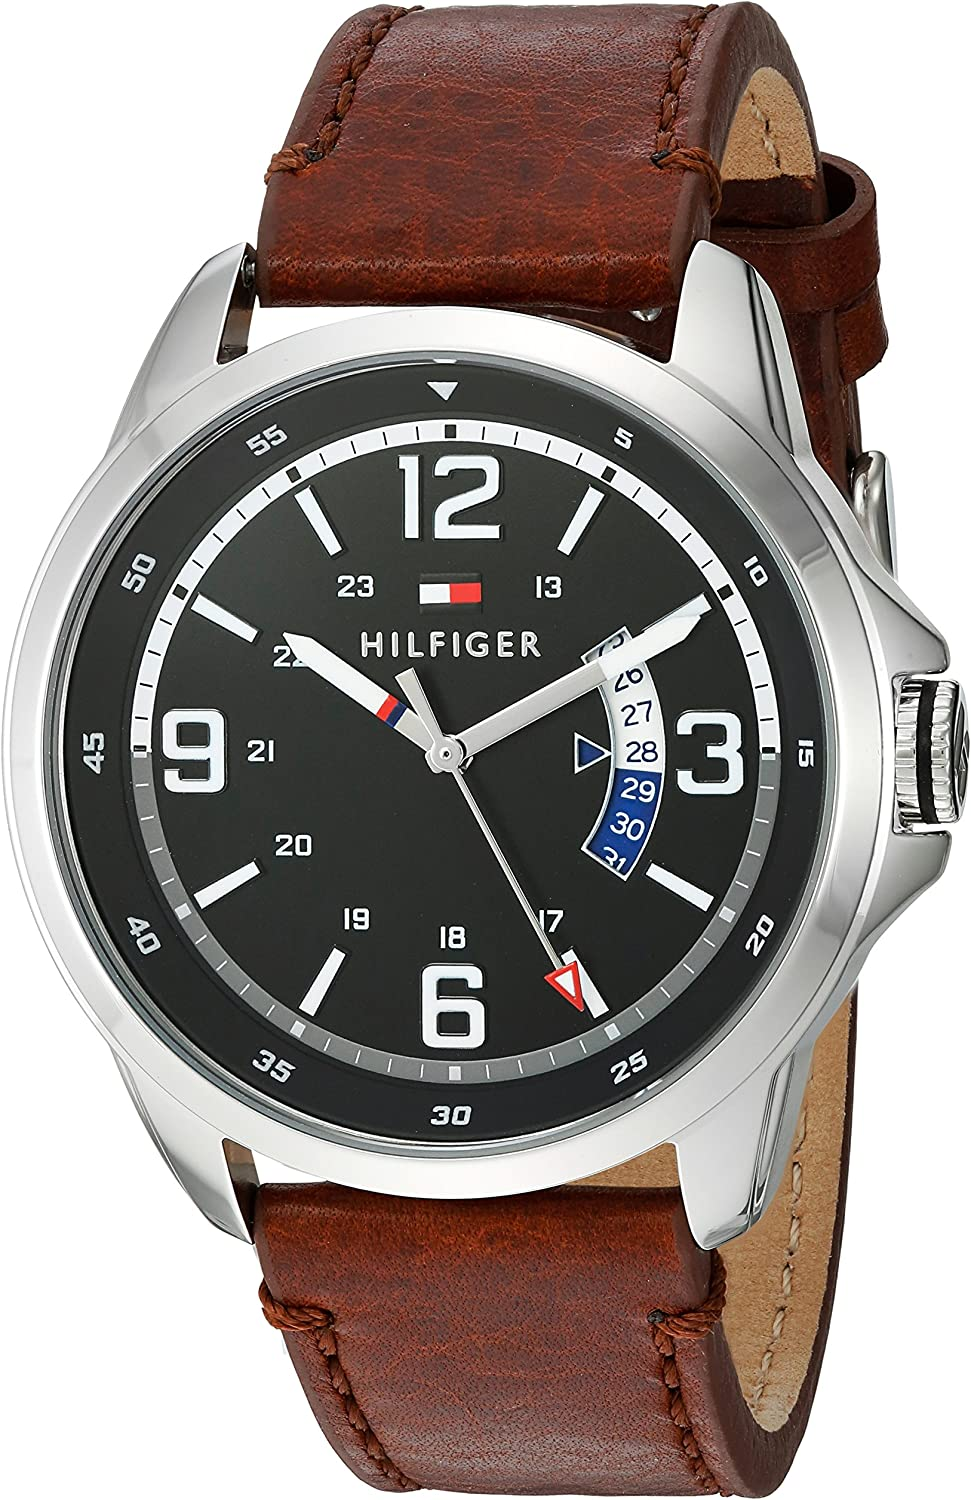 Tommy Hilfiger Men s Henry Stainless Steel Quartz Watch with Leather Calfskin Strap, Brown, 0.79 Model 1791321